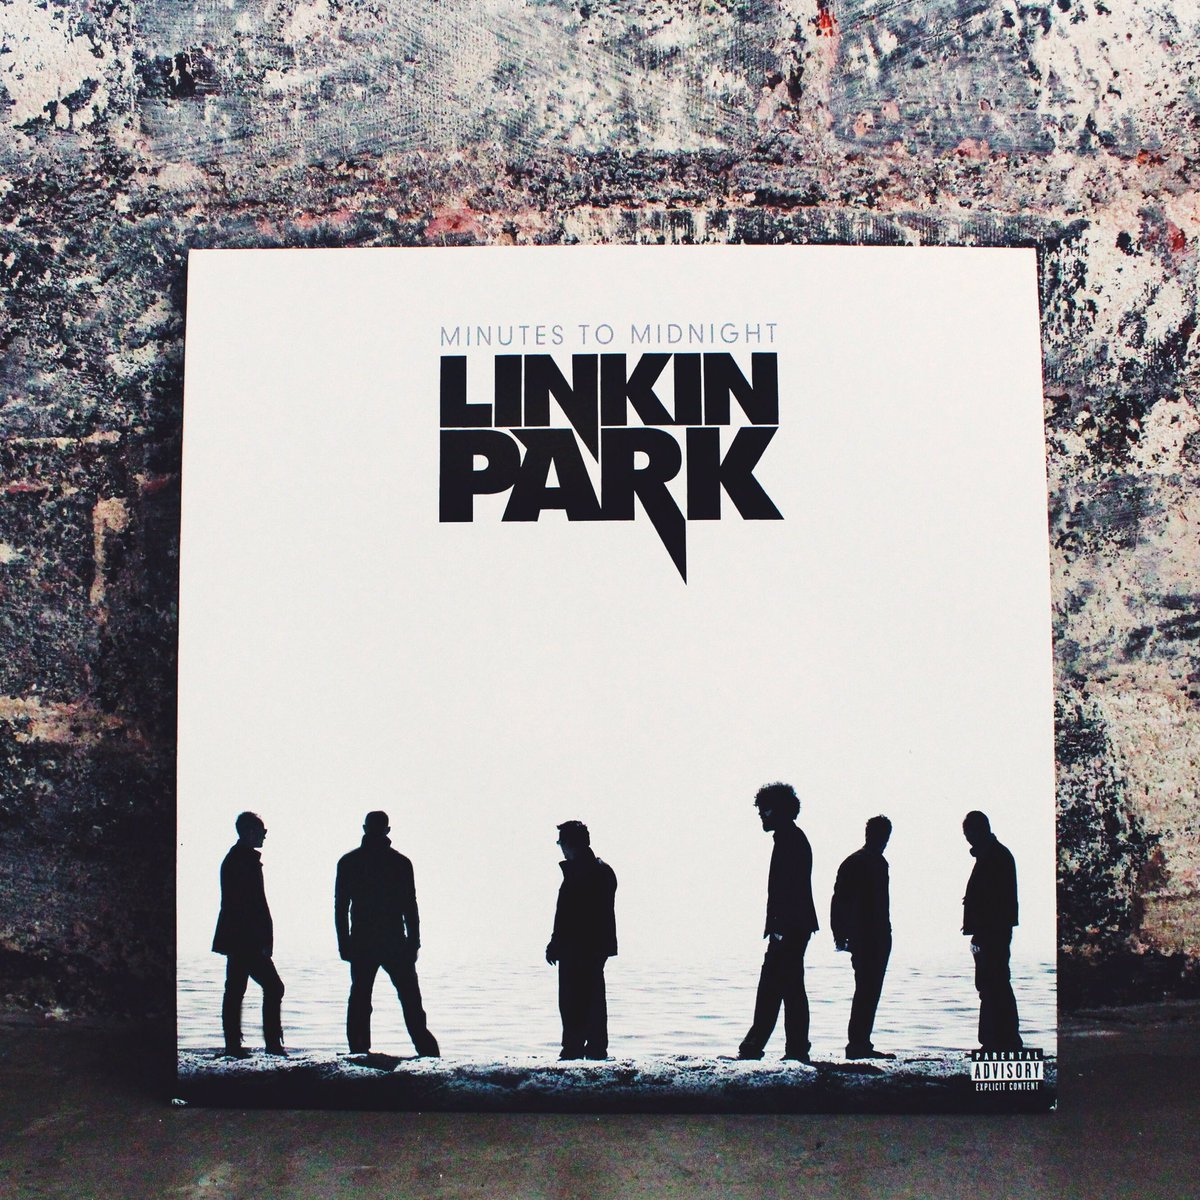 9 years ago today, #MinutesToMidnight was released worldwide. https://t.co/FFLpfWnqP1